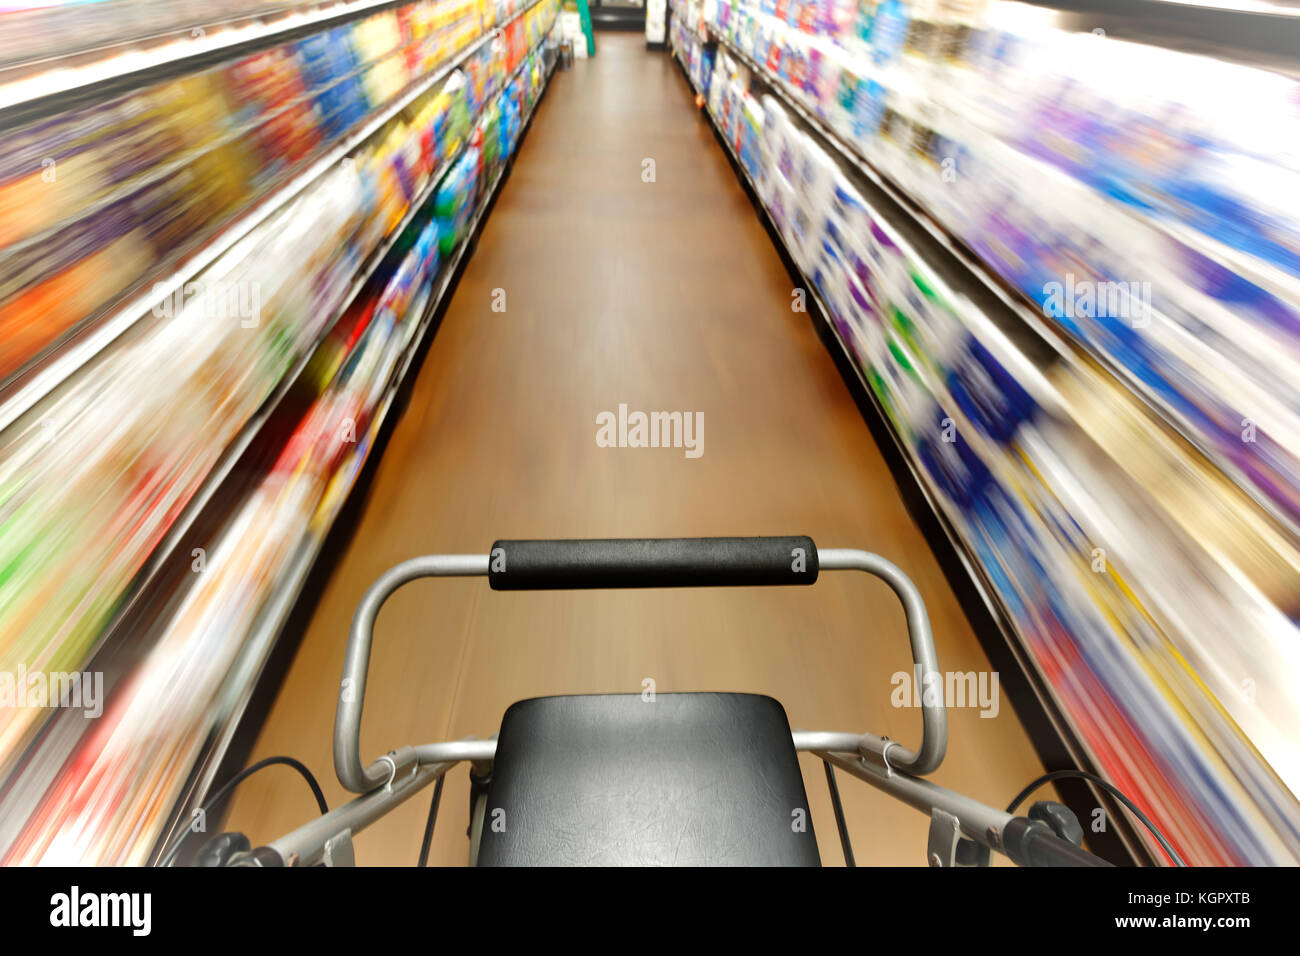 First person view of person with disability who is disoriented walking down a shopping aisle - Stock Image